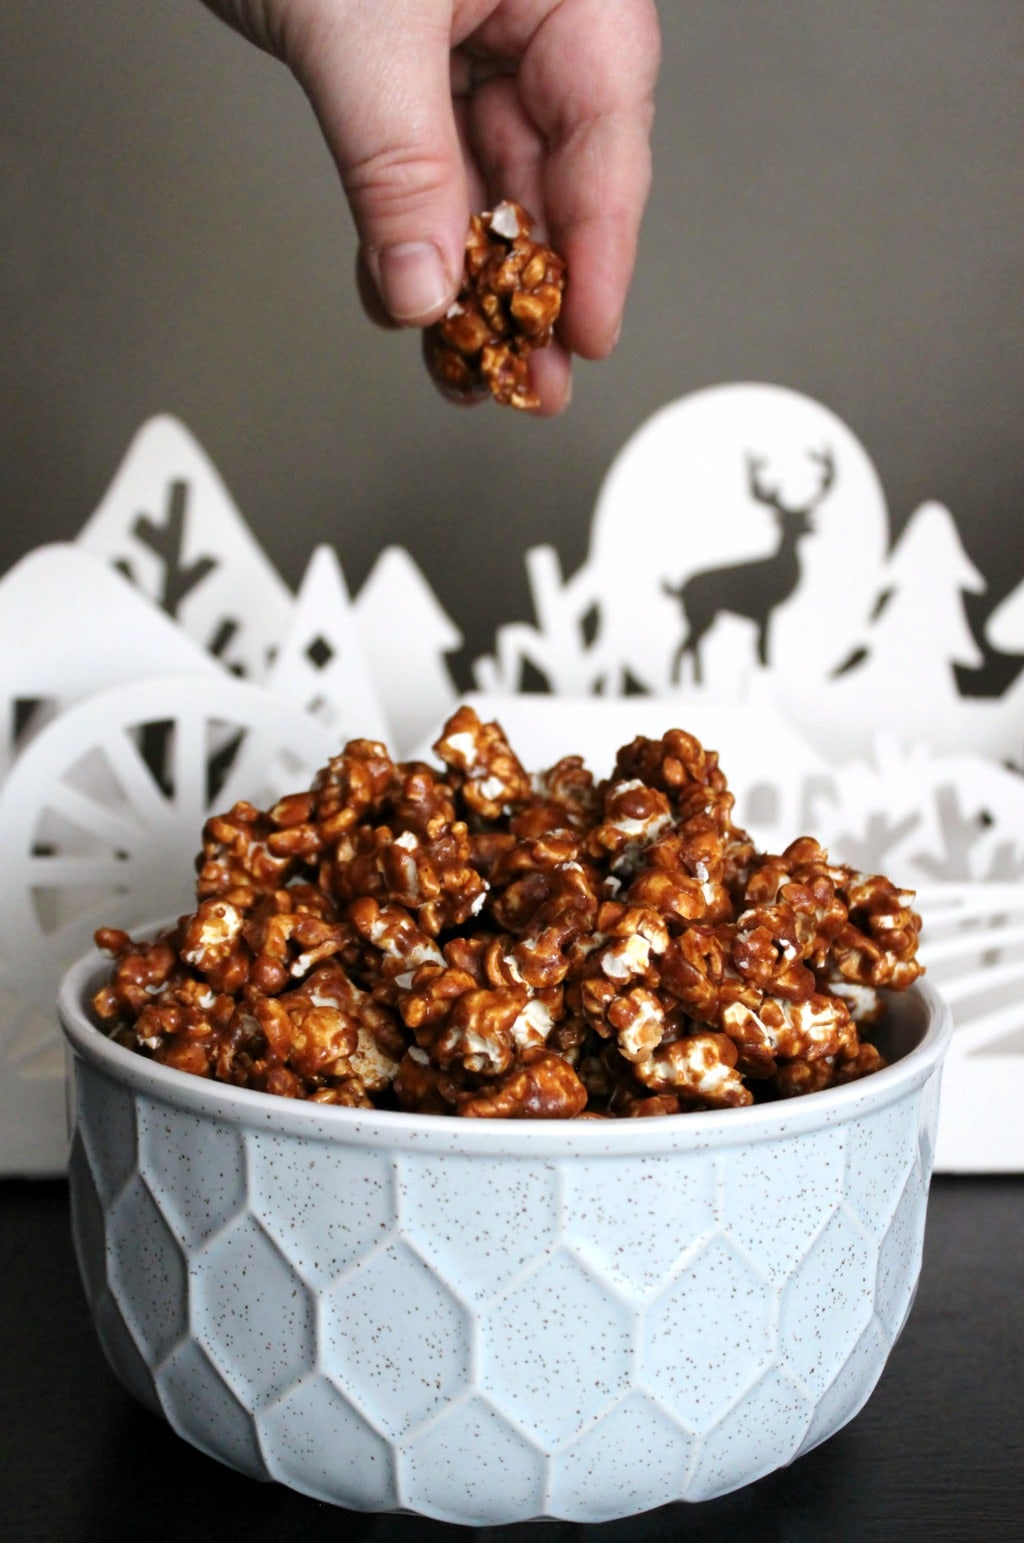 A delicious crispy, crunchy, buttery, Gingerbread Caramel Popcorn with warming Gingerbread spice. Pair it with your next Netflix binge and Chill. #caramelpopcorn #snacks #gingerbread #popcorn